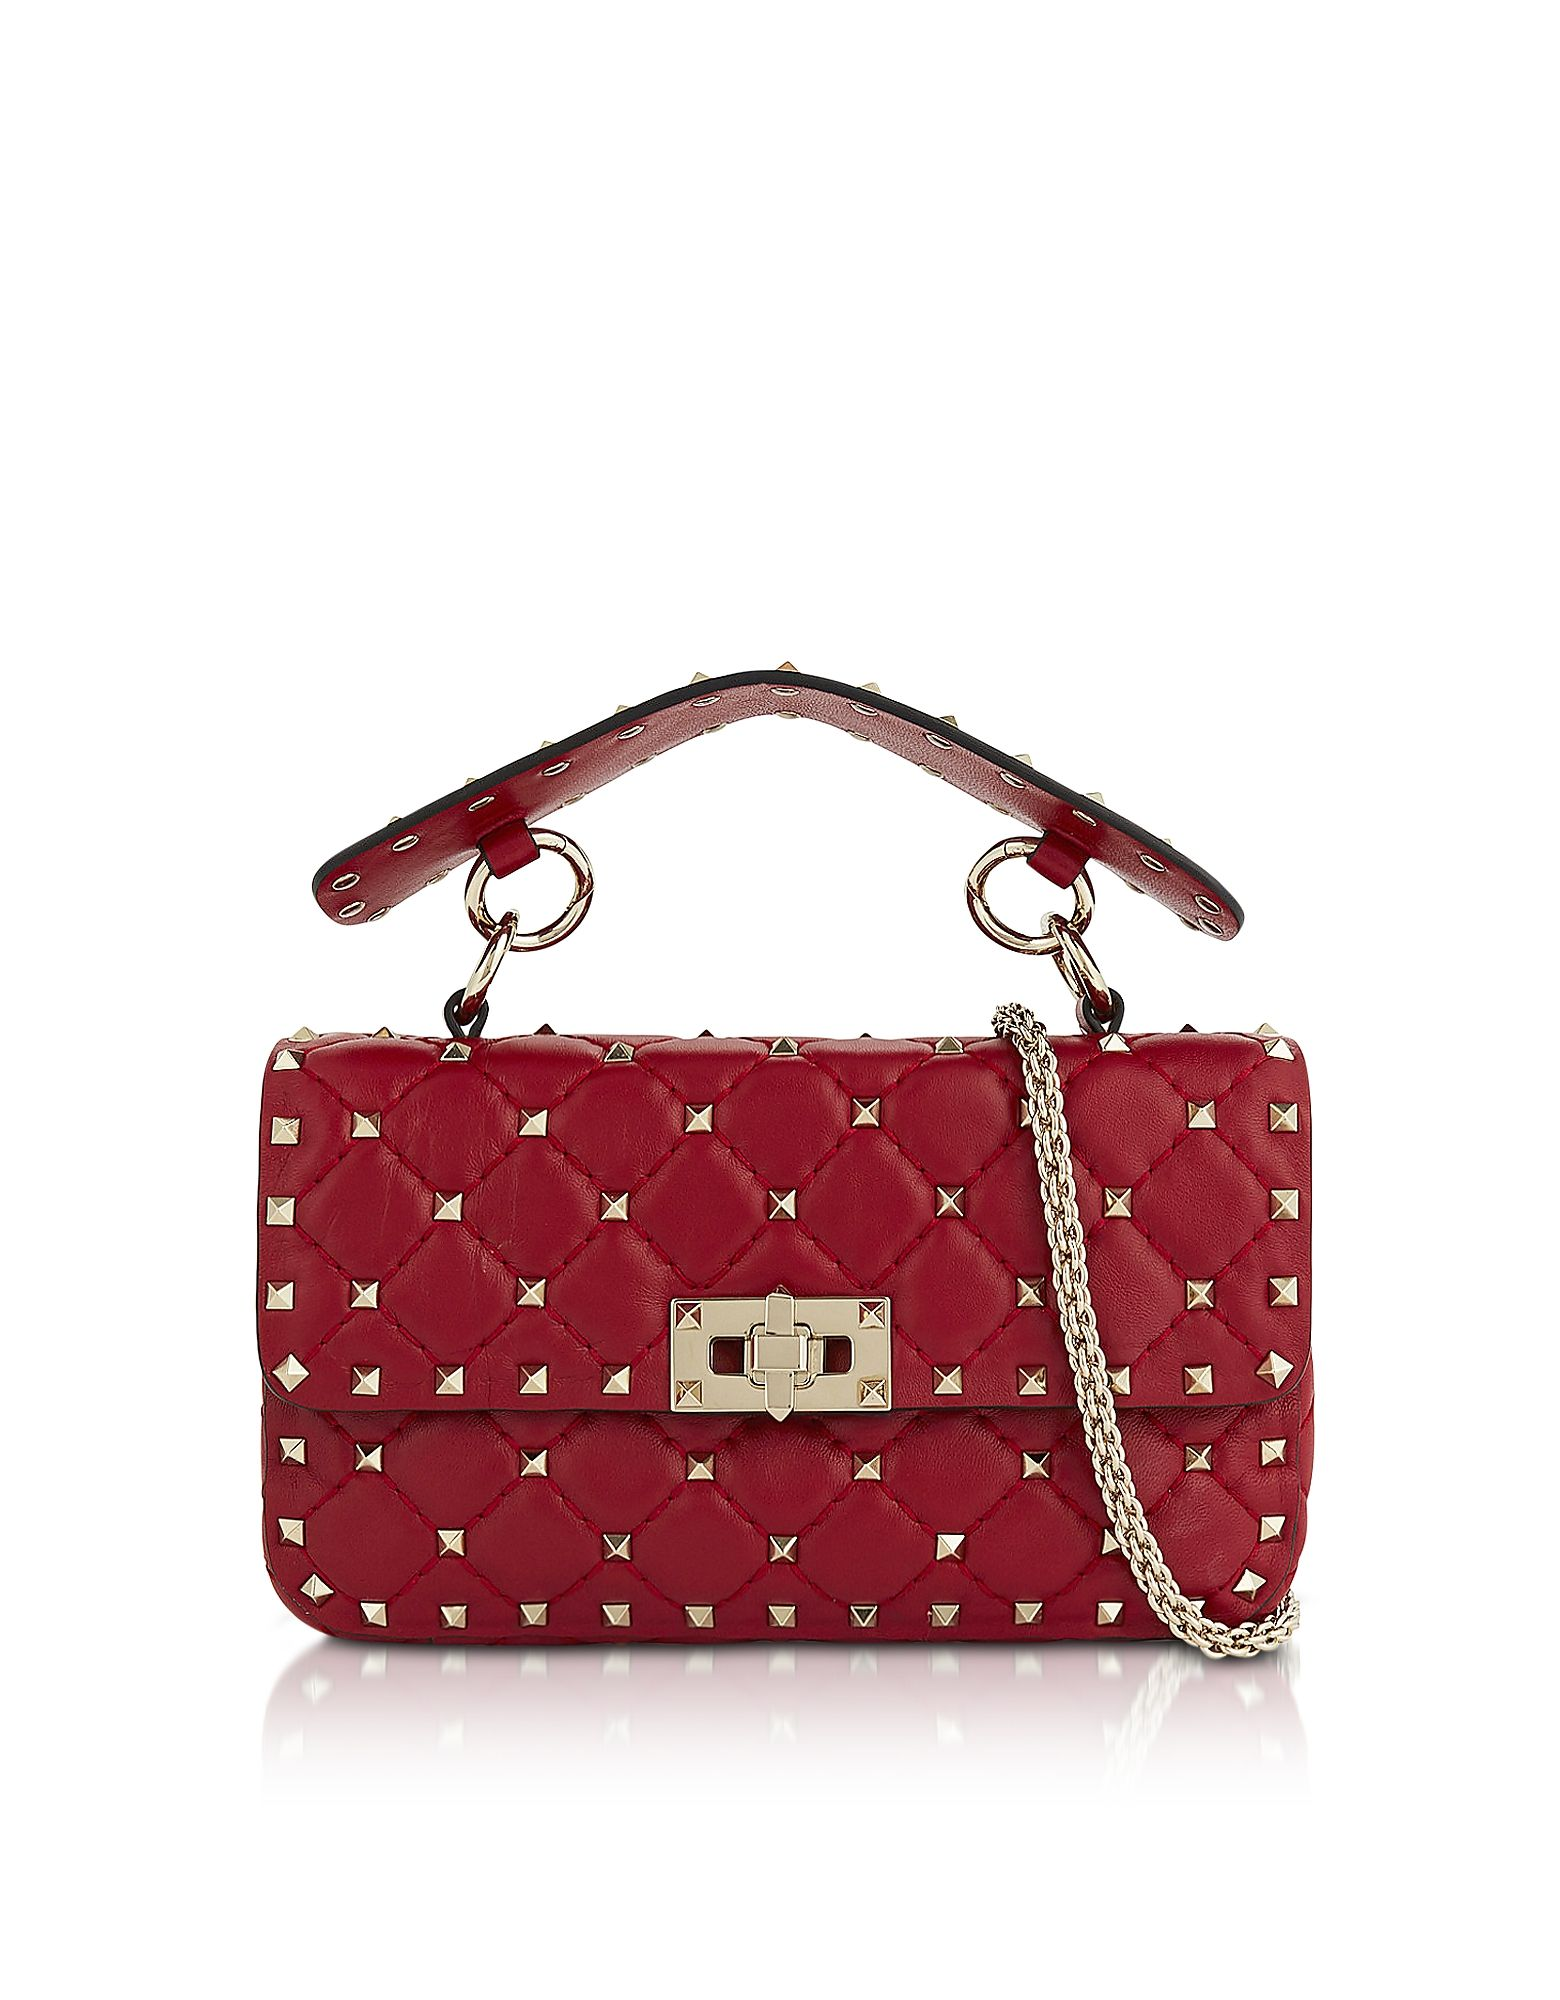 d5a2074b4c1fad VALENTINO RED QUILTED LEATHER ROCKSTUD SPIKE SMALL SHOULDER BAG. #valentino  #bags #shoulder bags #hand bags #leather #lining #